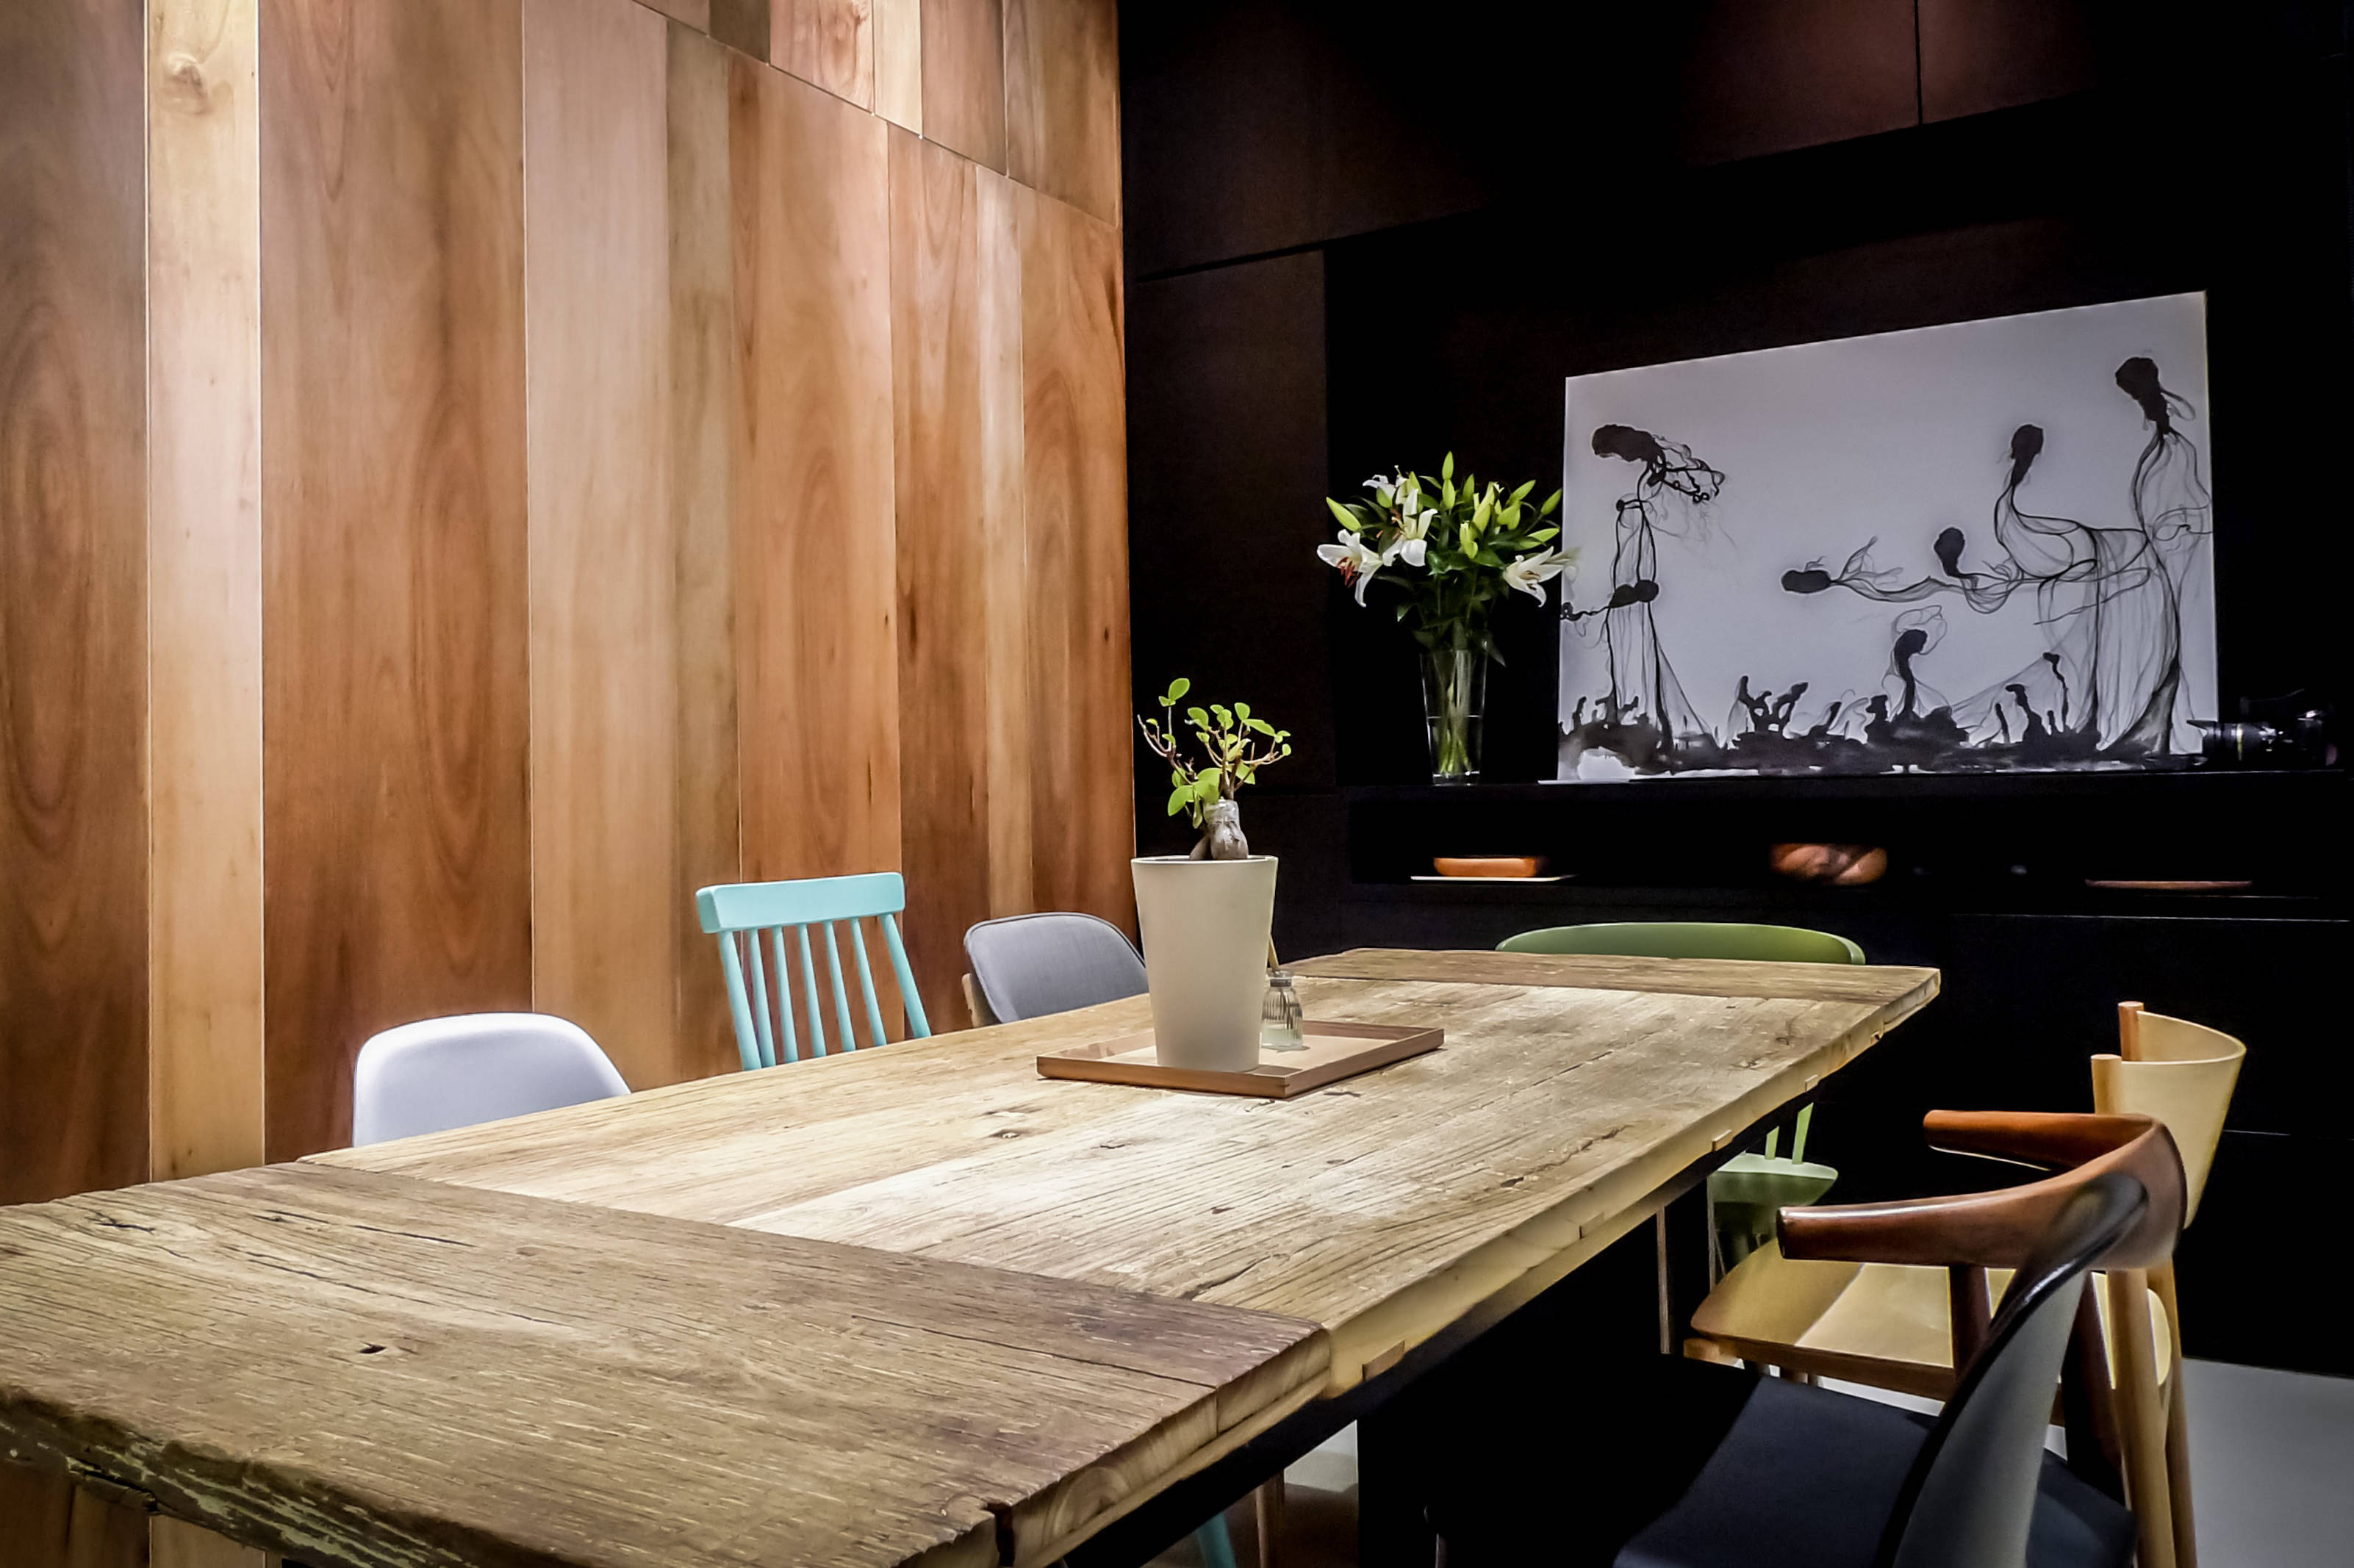 Announcing the Lookbox Design Awards shortlist for Outstanding Space